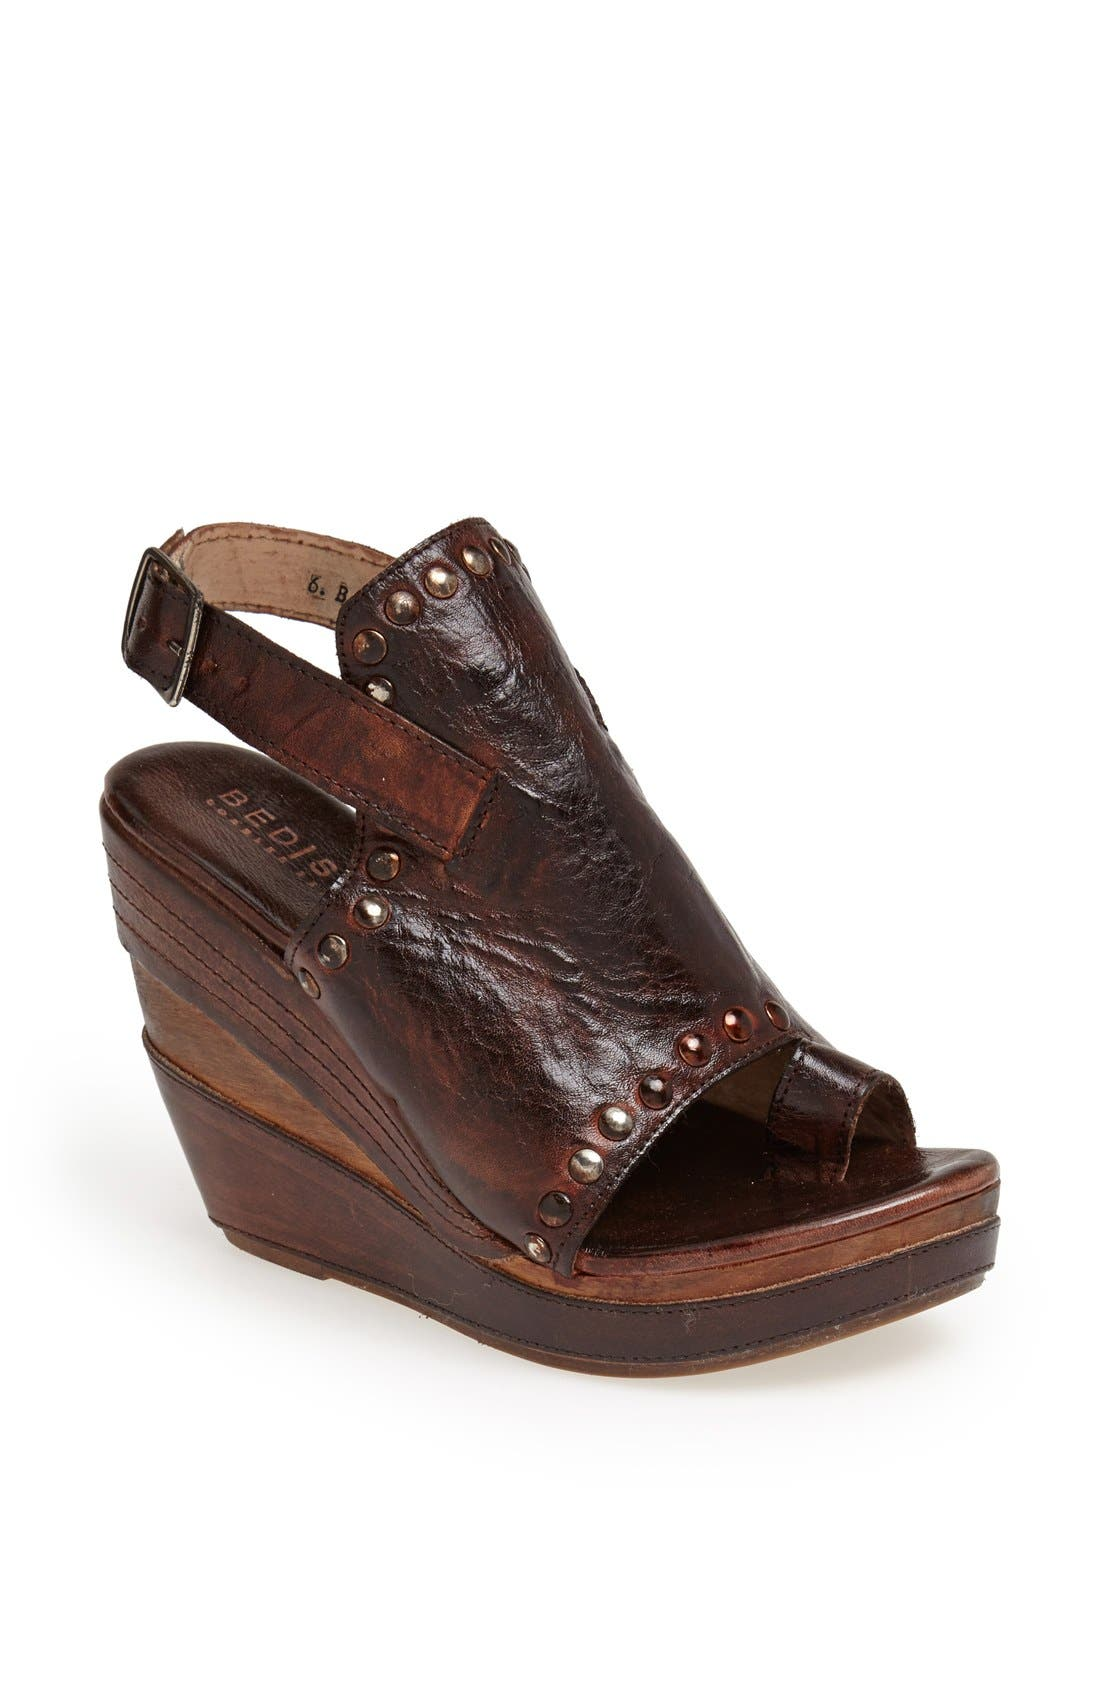 Alternate Image 1 Selected - Bed Stu 'Joann' Leather Sandal